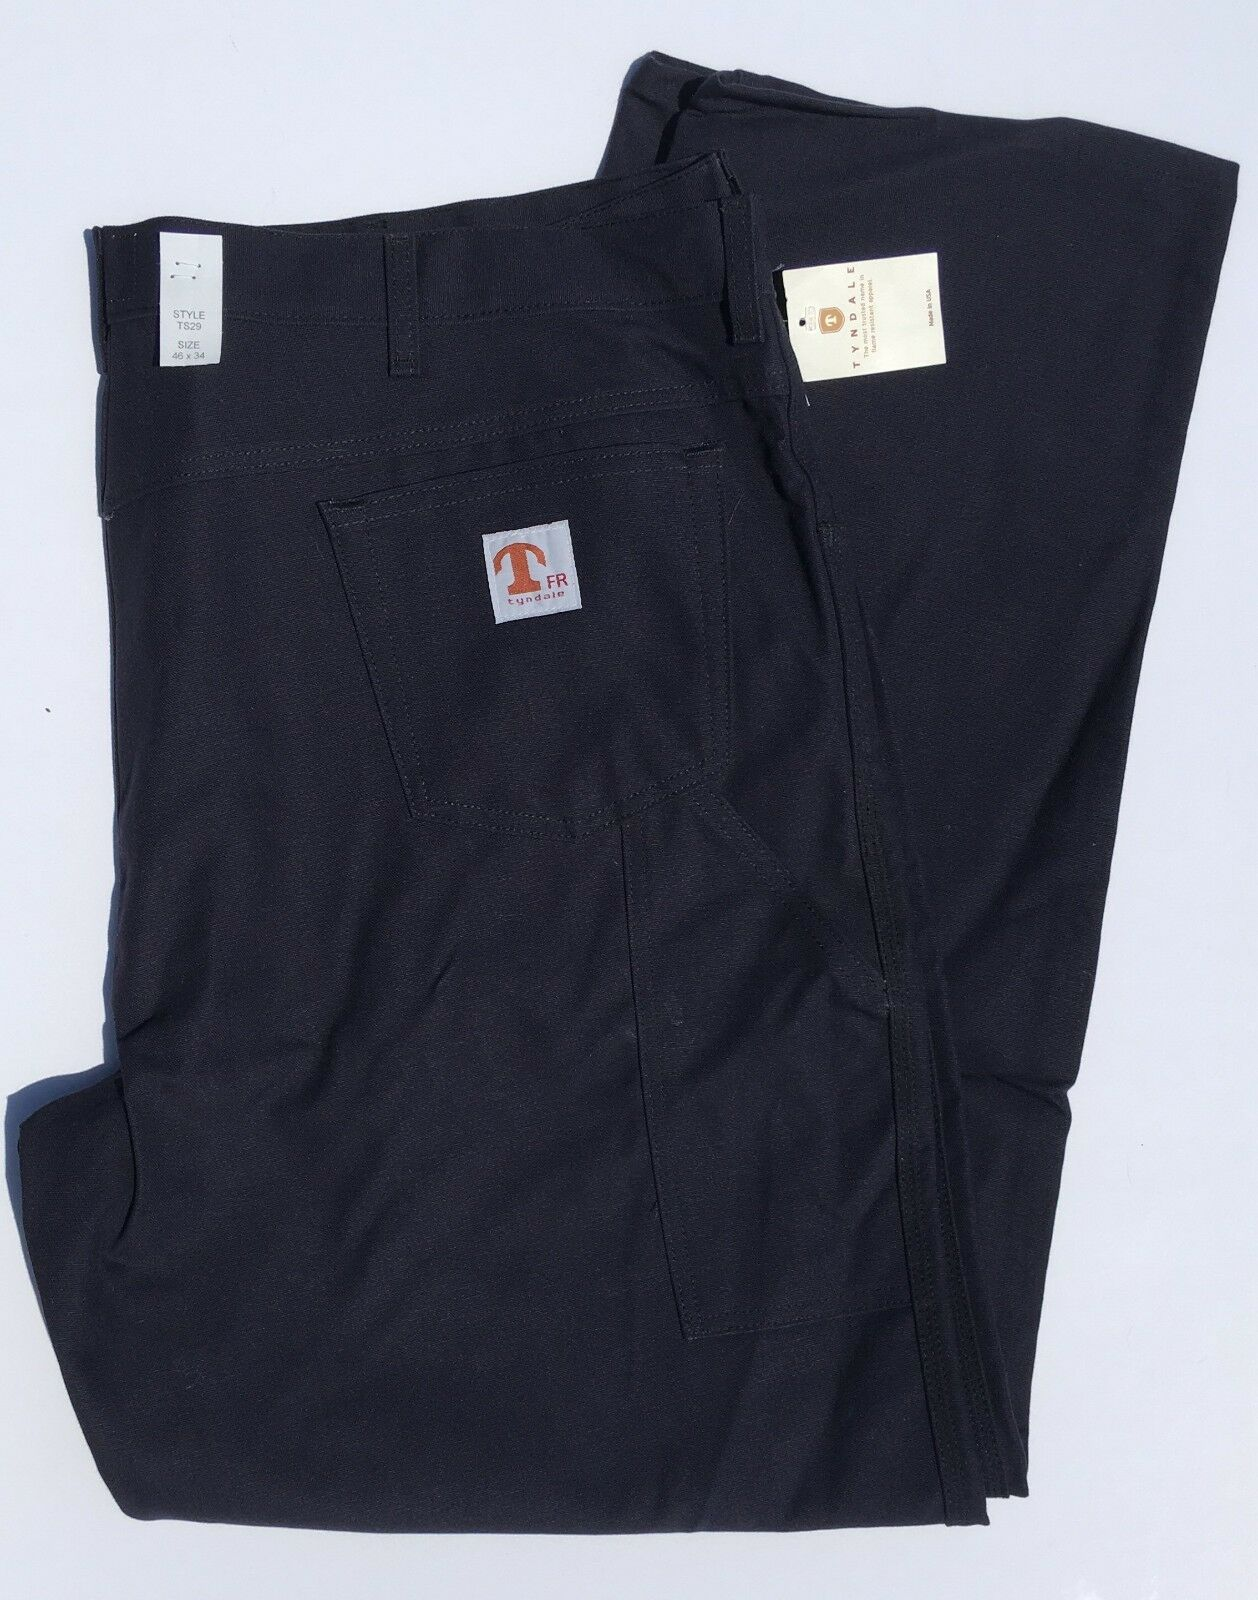 Tyndale Size 46 x 34 Mens bluee Flame Resistant Pants